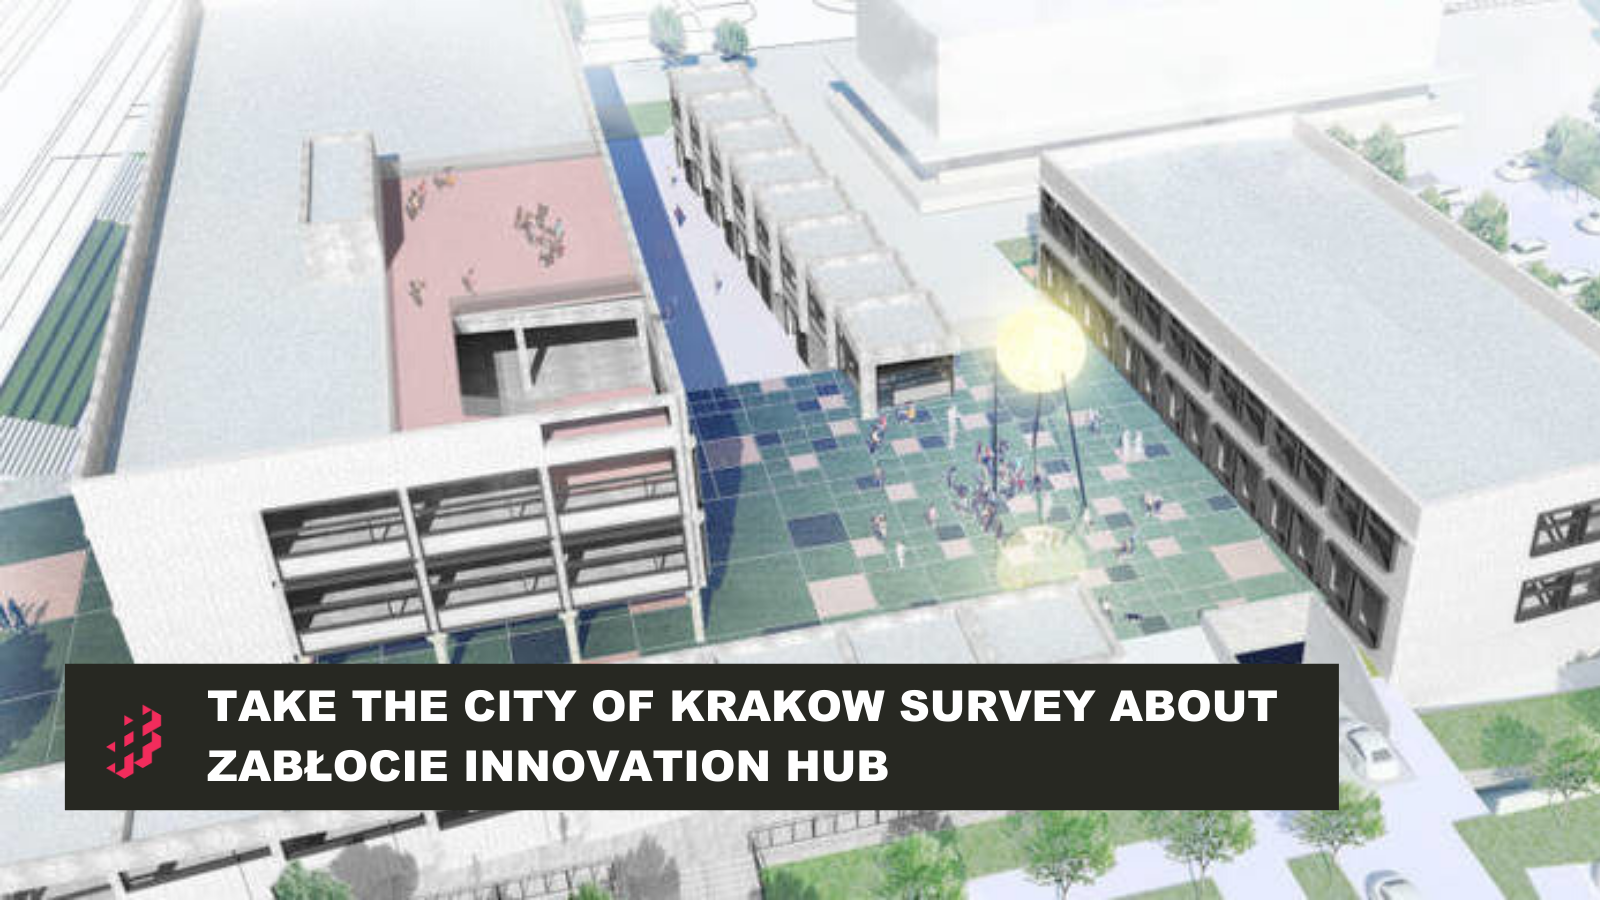 Zabłocie Innovation Hub Survey, Give The City Of Krakow Your Input: Take The Zabłocie Innovation Hub Survey